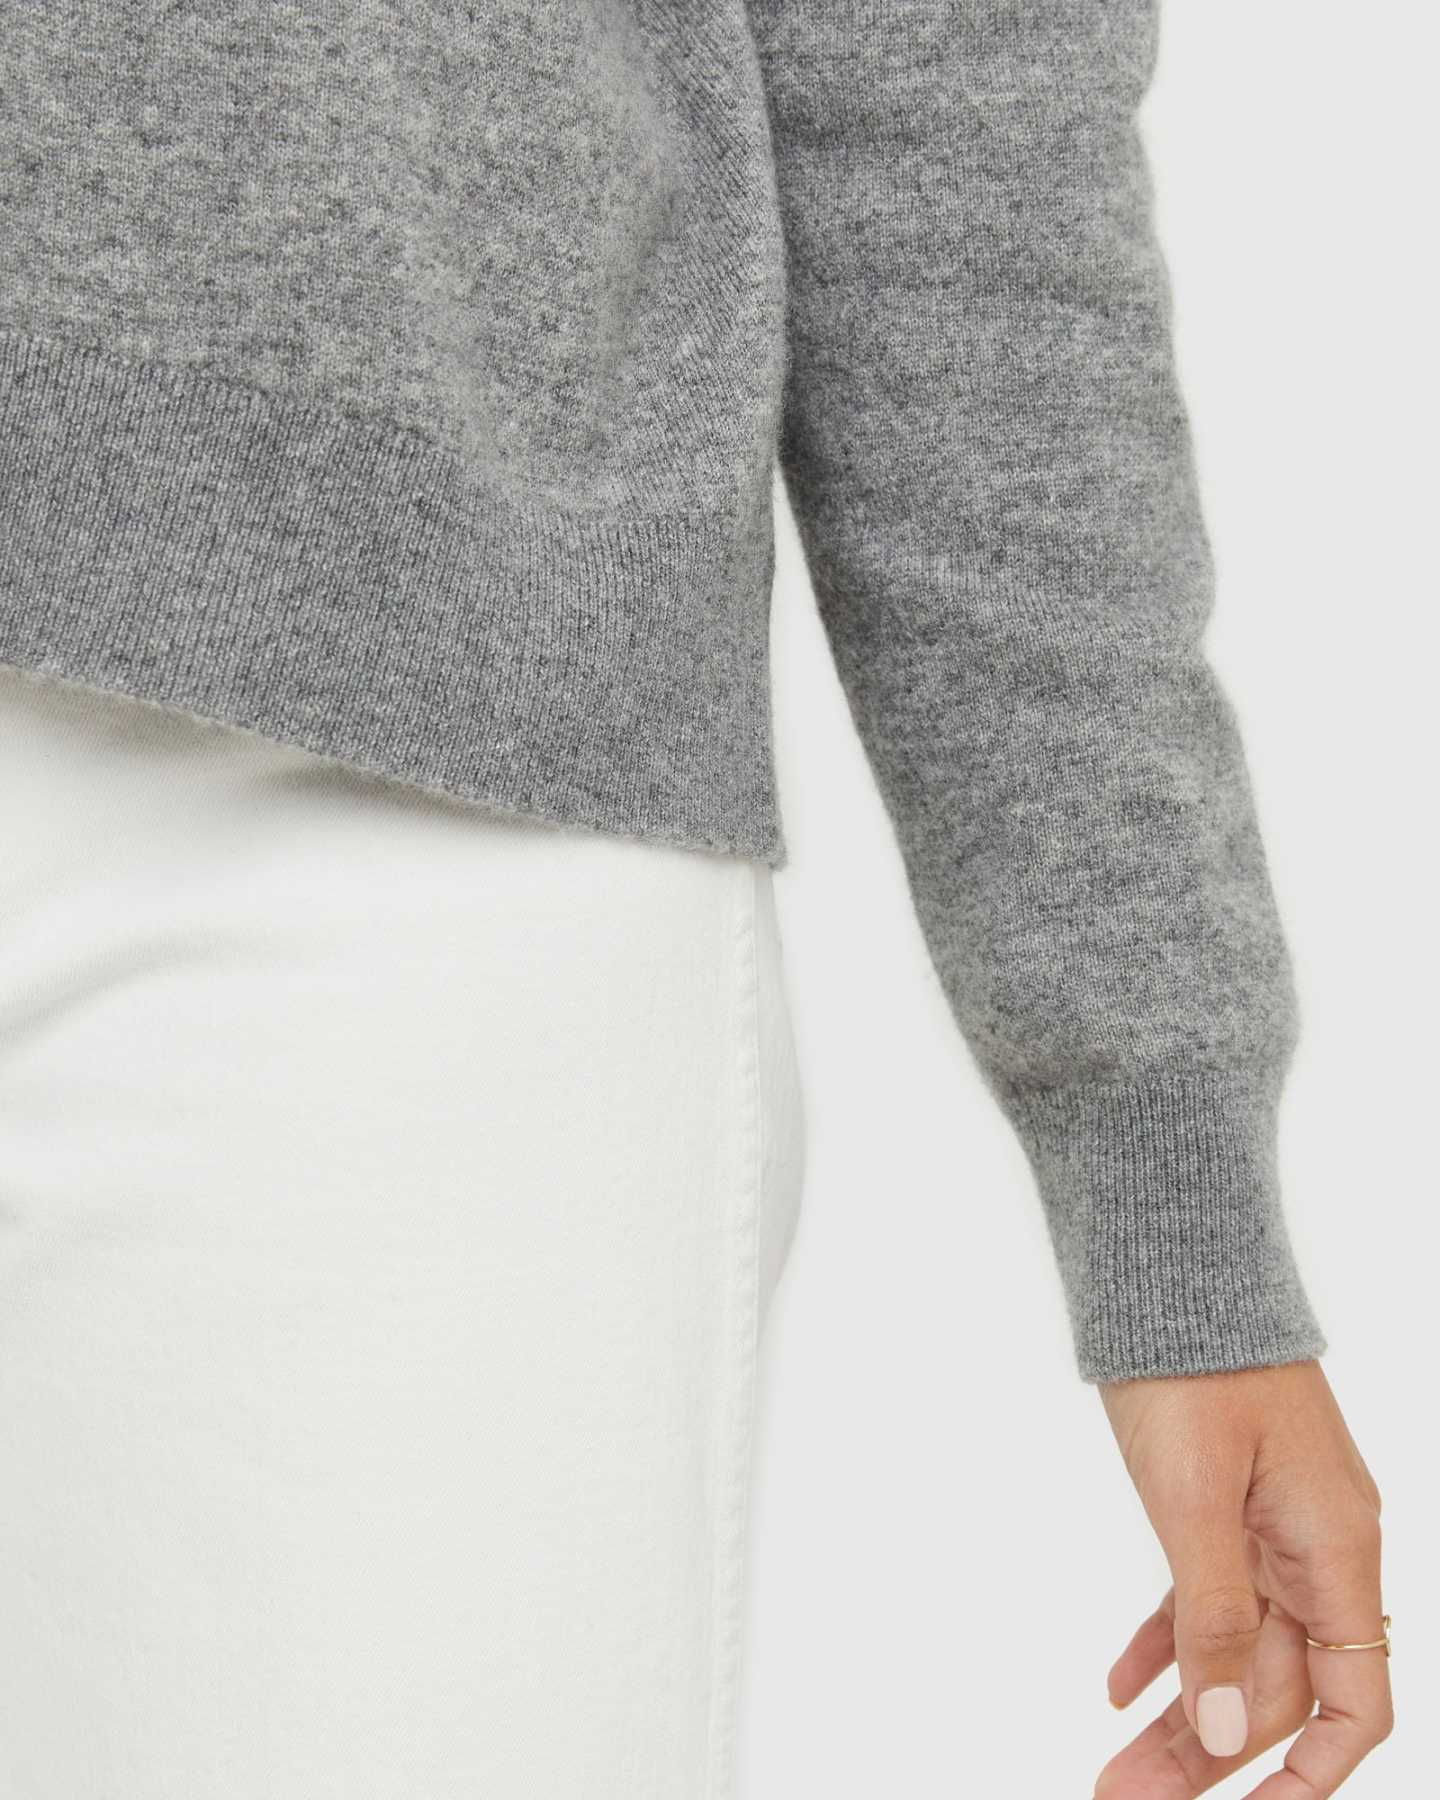 Woman wearing grey cashmere mockneck sweater zoomed in on sleeve